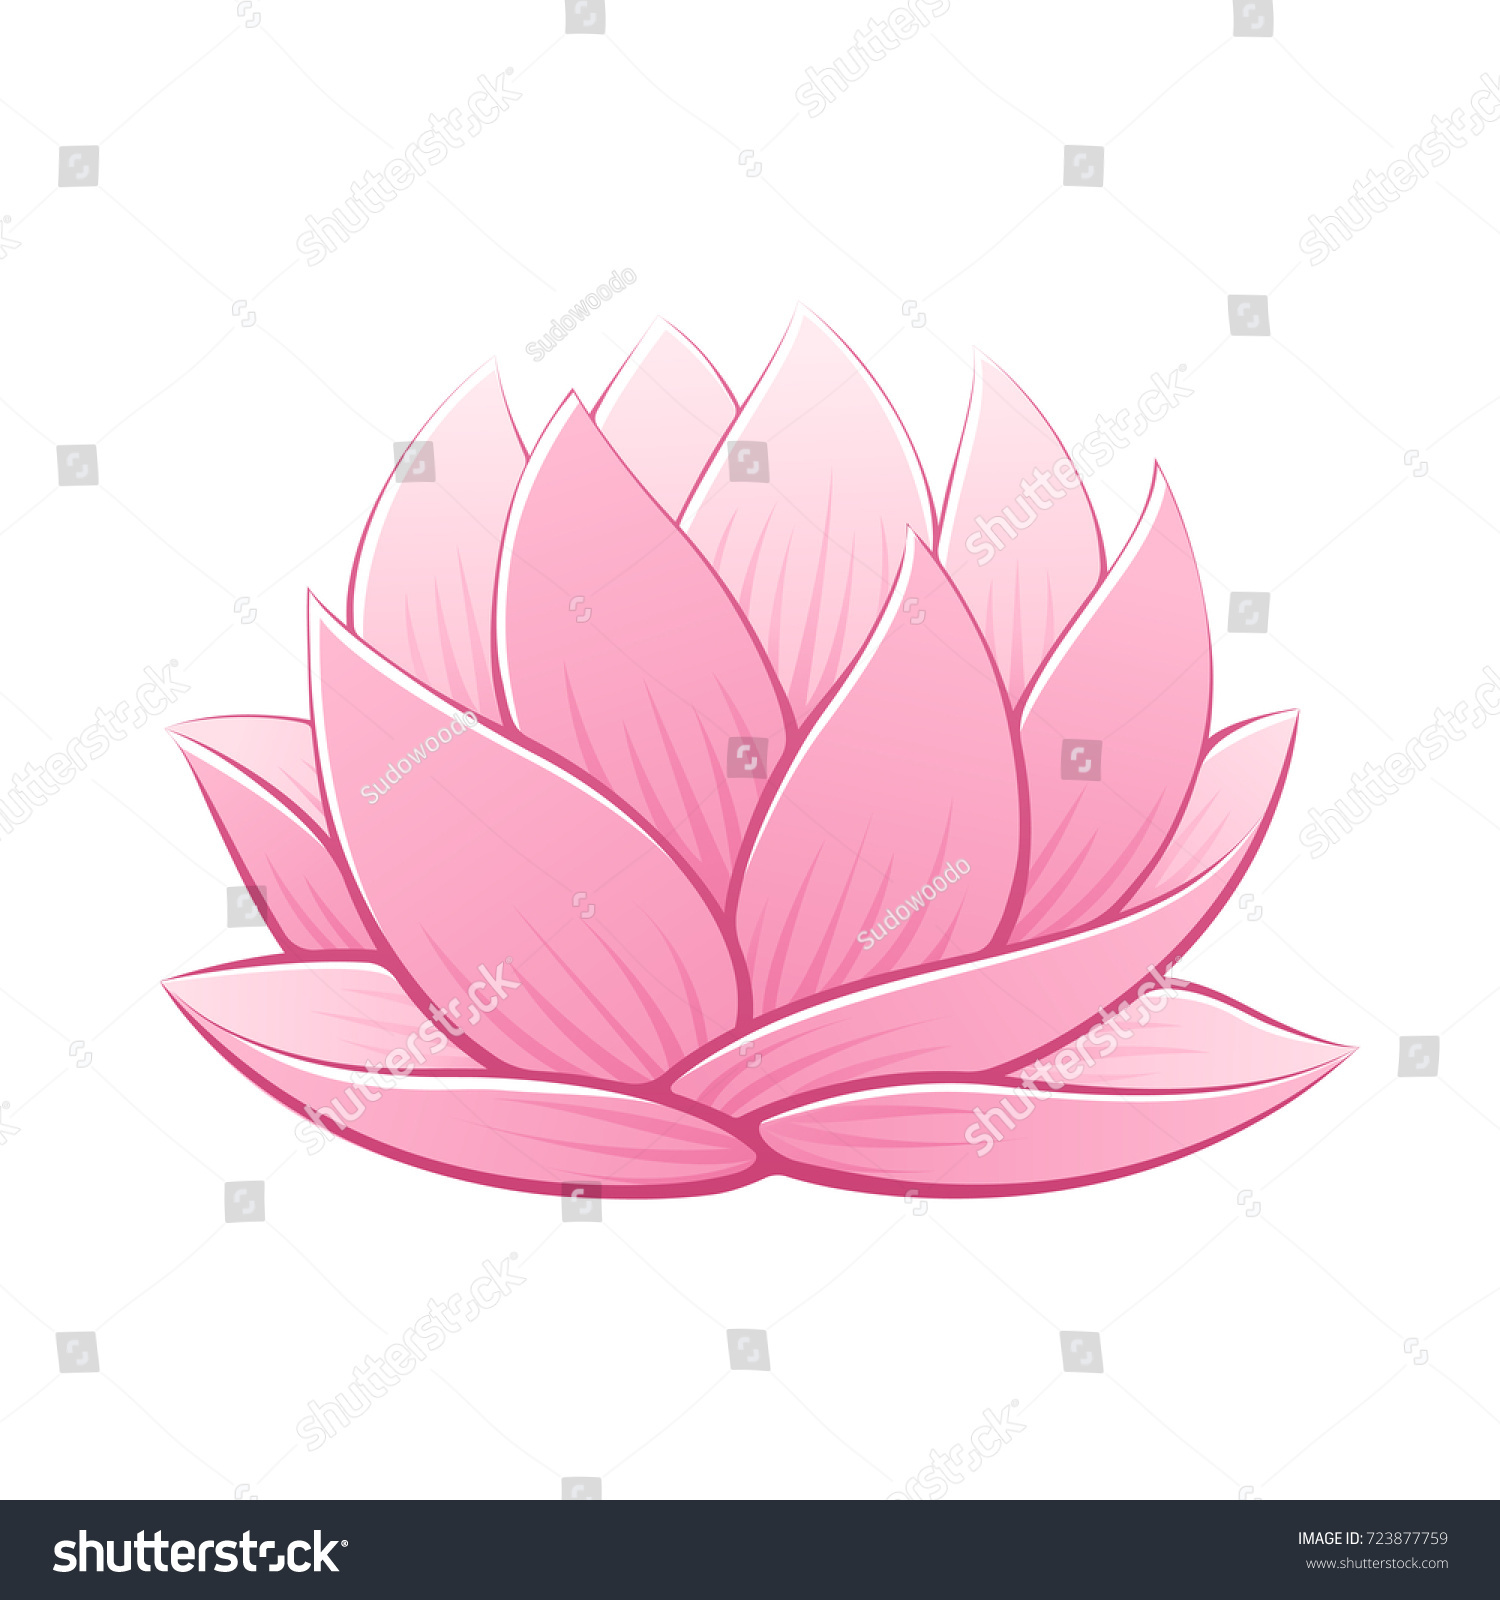 Pink Lotus Flower Vector Illustration Beautiful Stock Vector